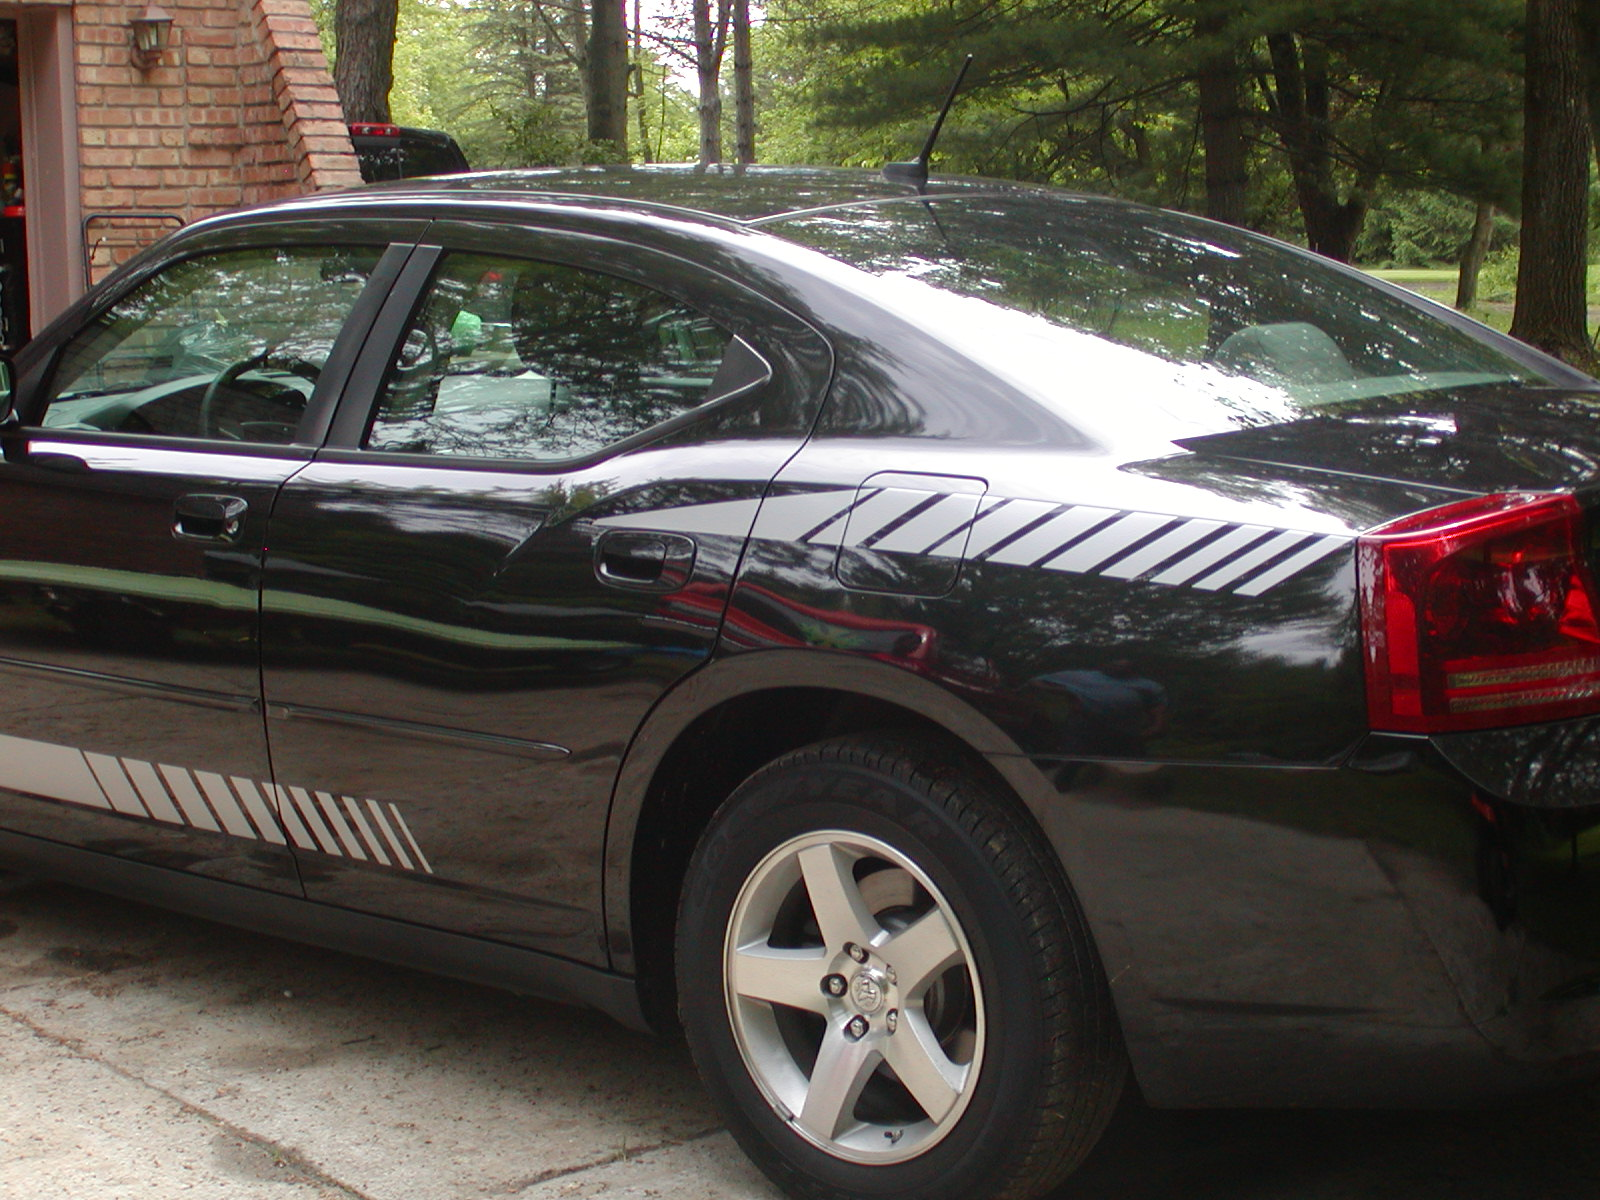 Car custom decals and graphics - Dodge Charger Avenger Fading Rear Quarter Fender Stripe Decals